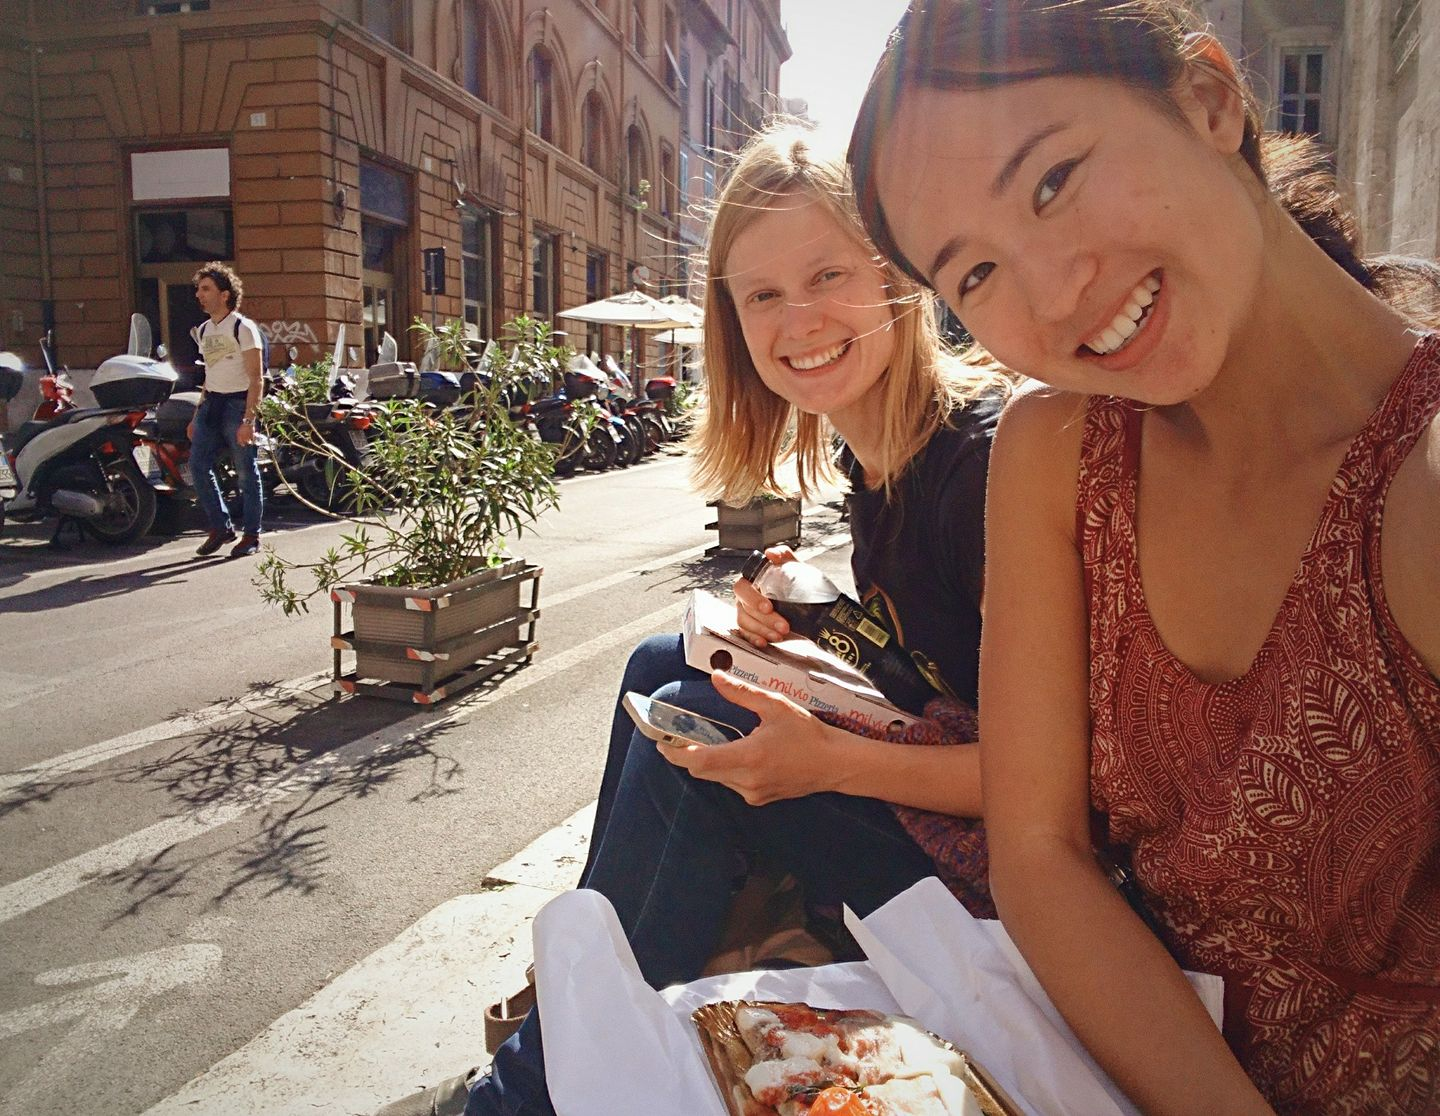 Fresh pizza on the streets of Rome with Julia, whom I met in Saskatoon in 2013. She now lives in Philadelphia with her fiance.